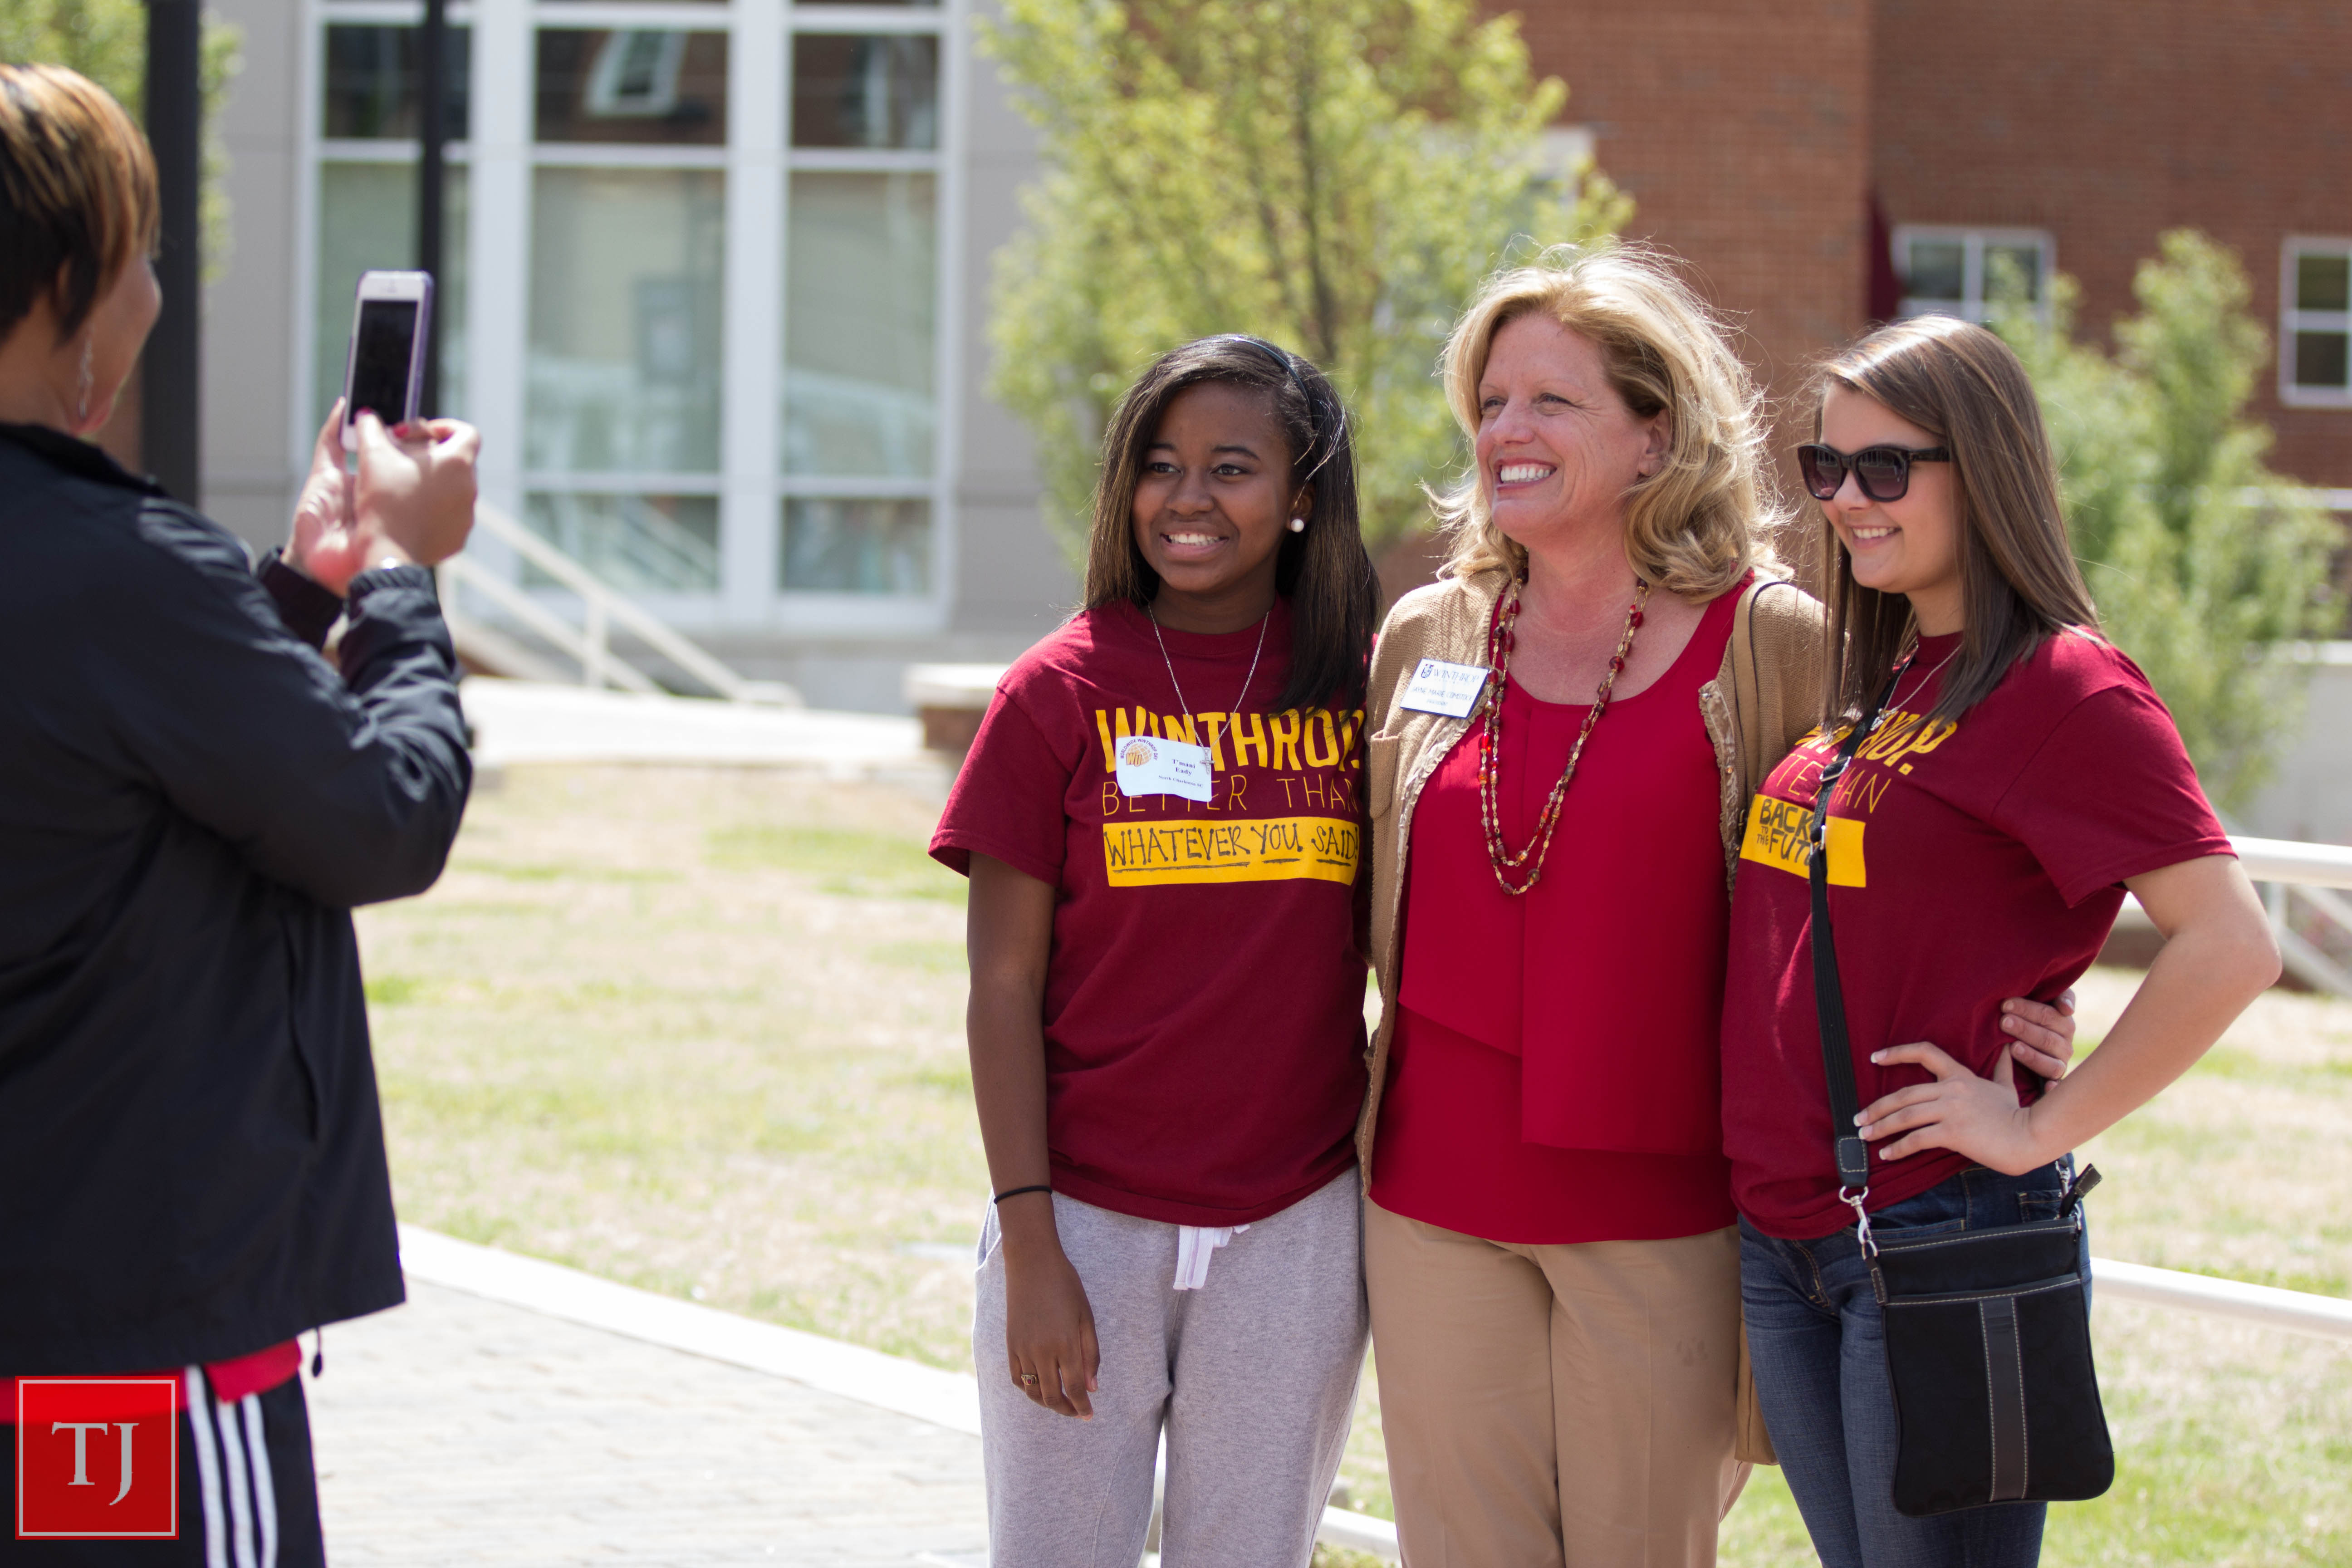 Williamson posing for a photo with future students at World Wide Winthrop Day 2014. Photo by Jacob Hallex